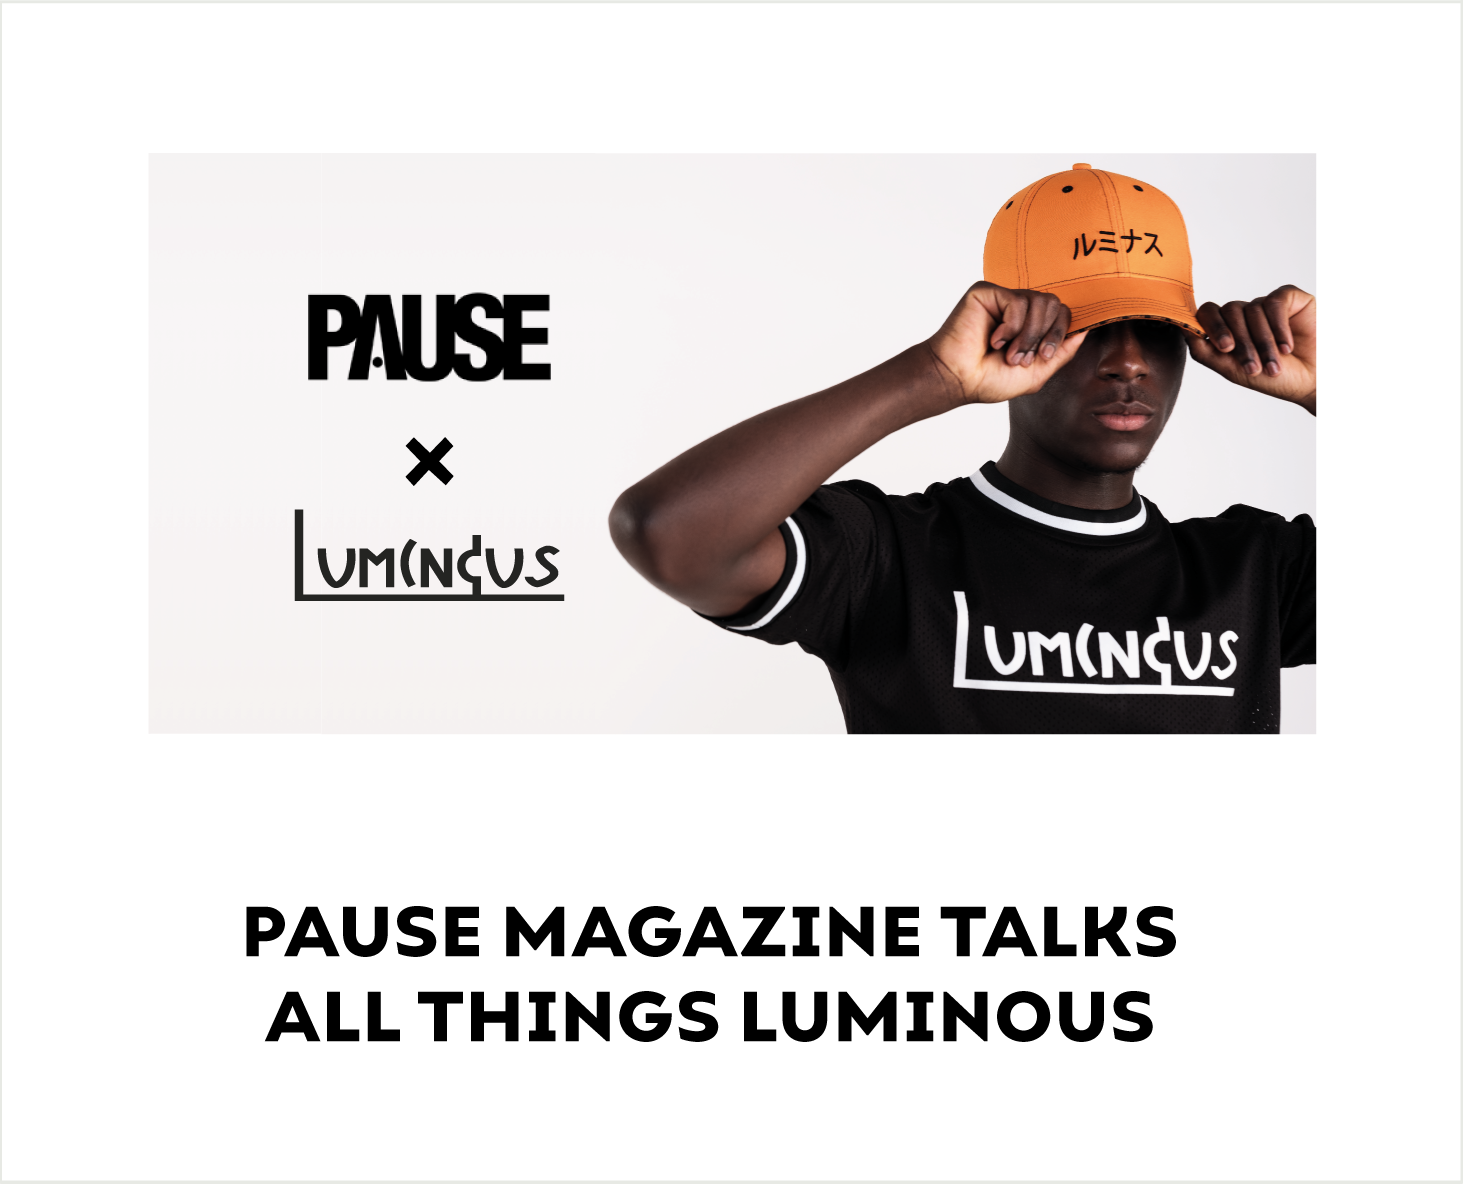 Pause Magazine Talks All Things Luminous